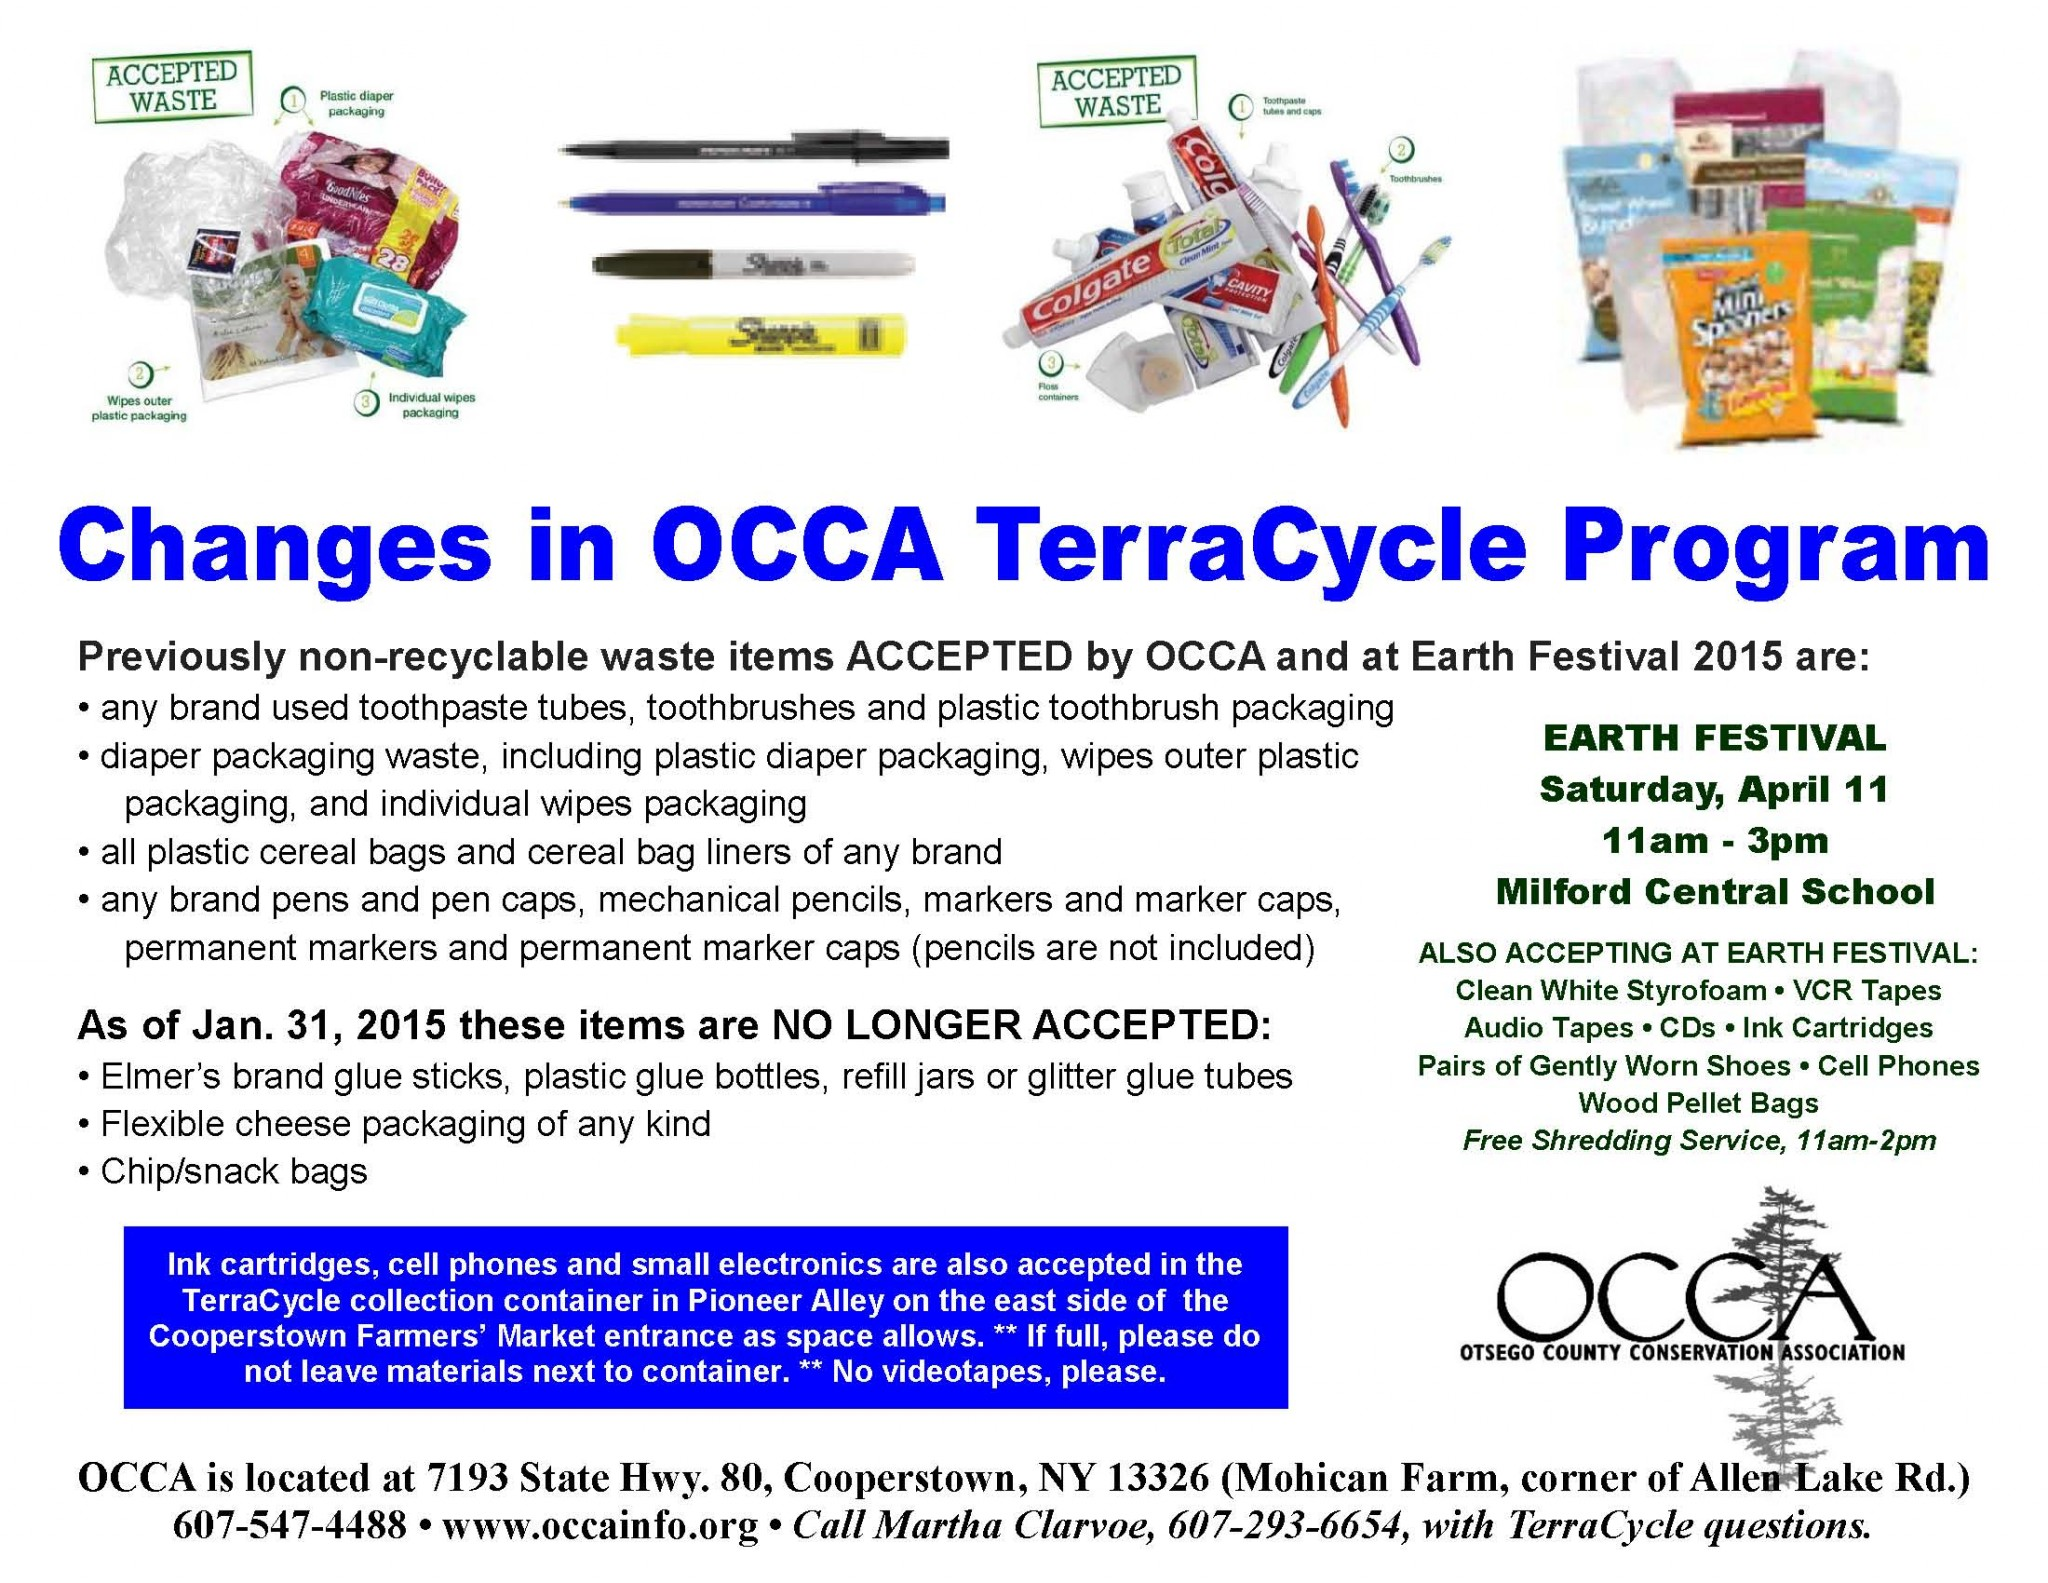 ECO-BULLETIN Vol 8, No 2 – March 20, 2015 – OCCA – Otsego